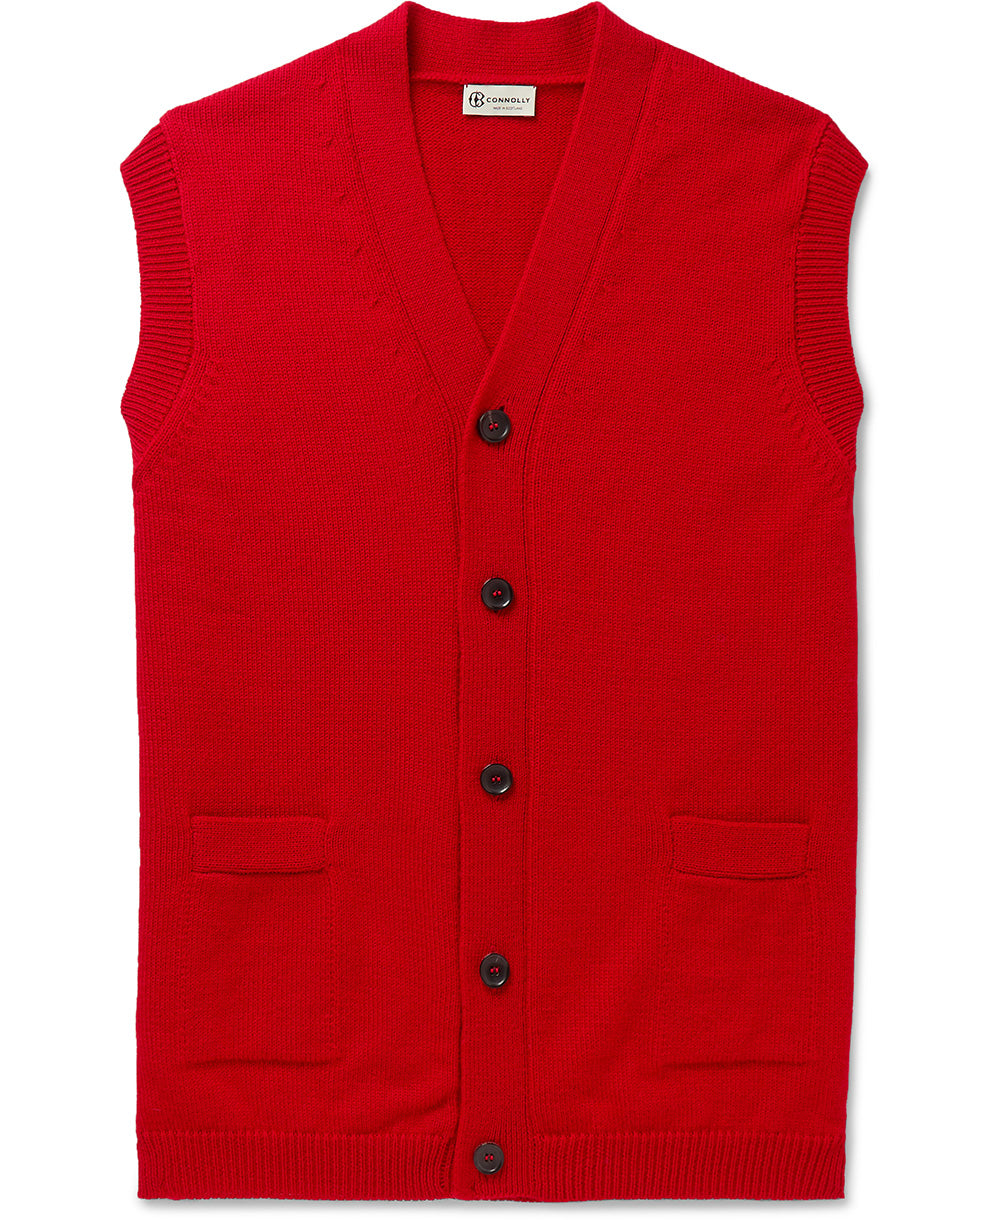 Goodwood Connolly Winners Waistcoat Red